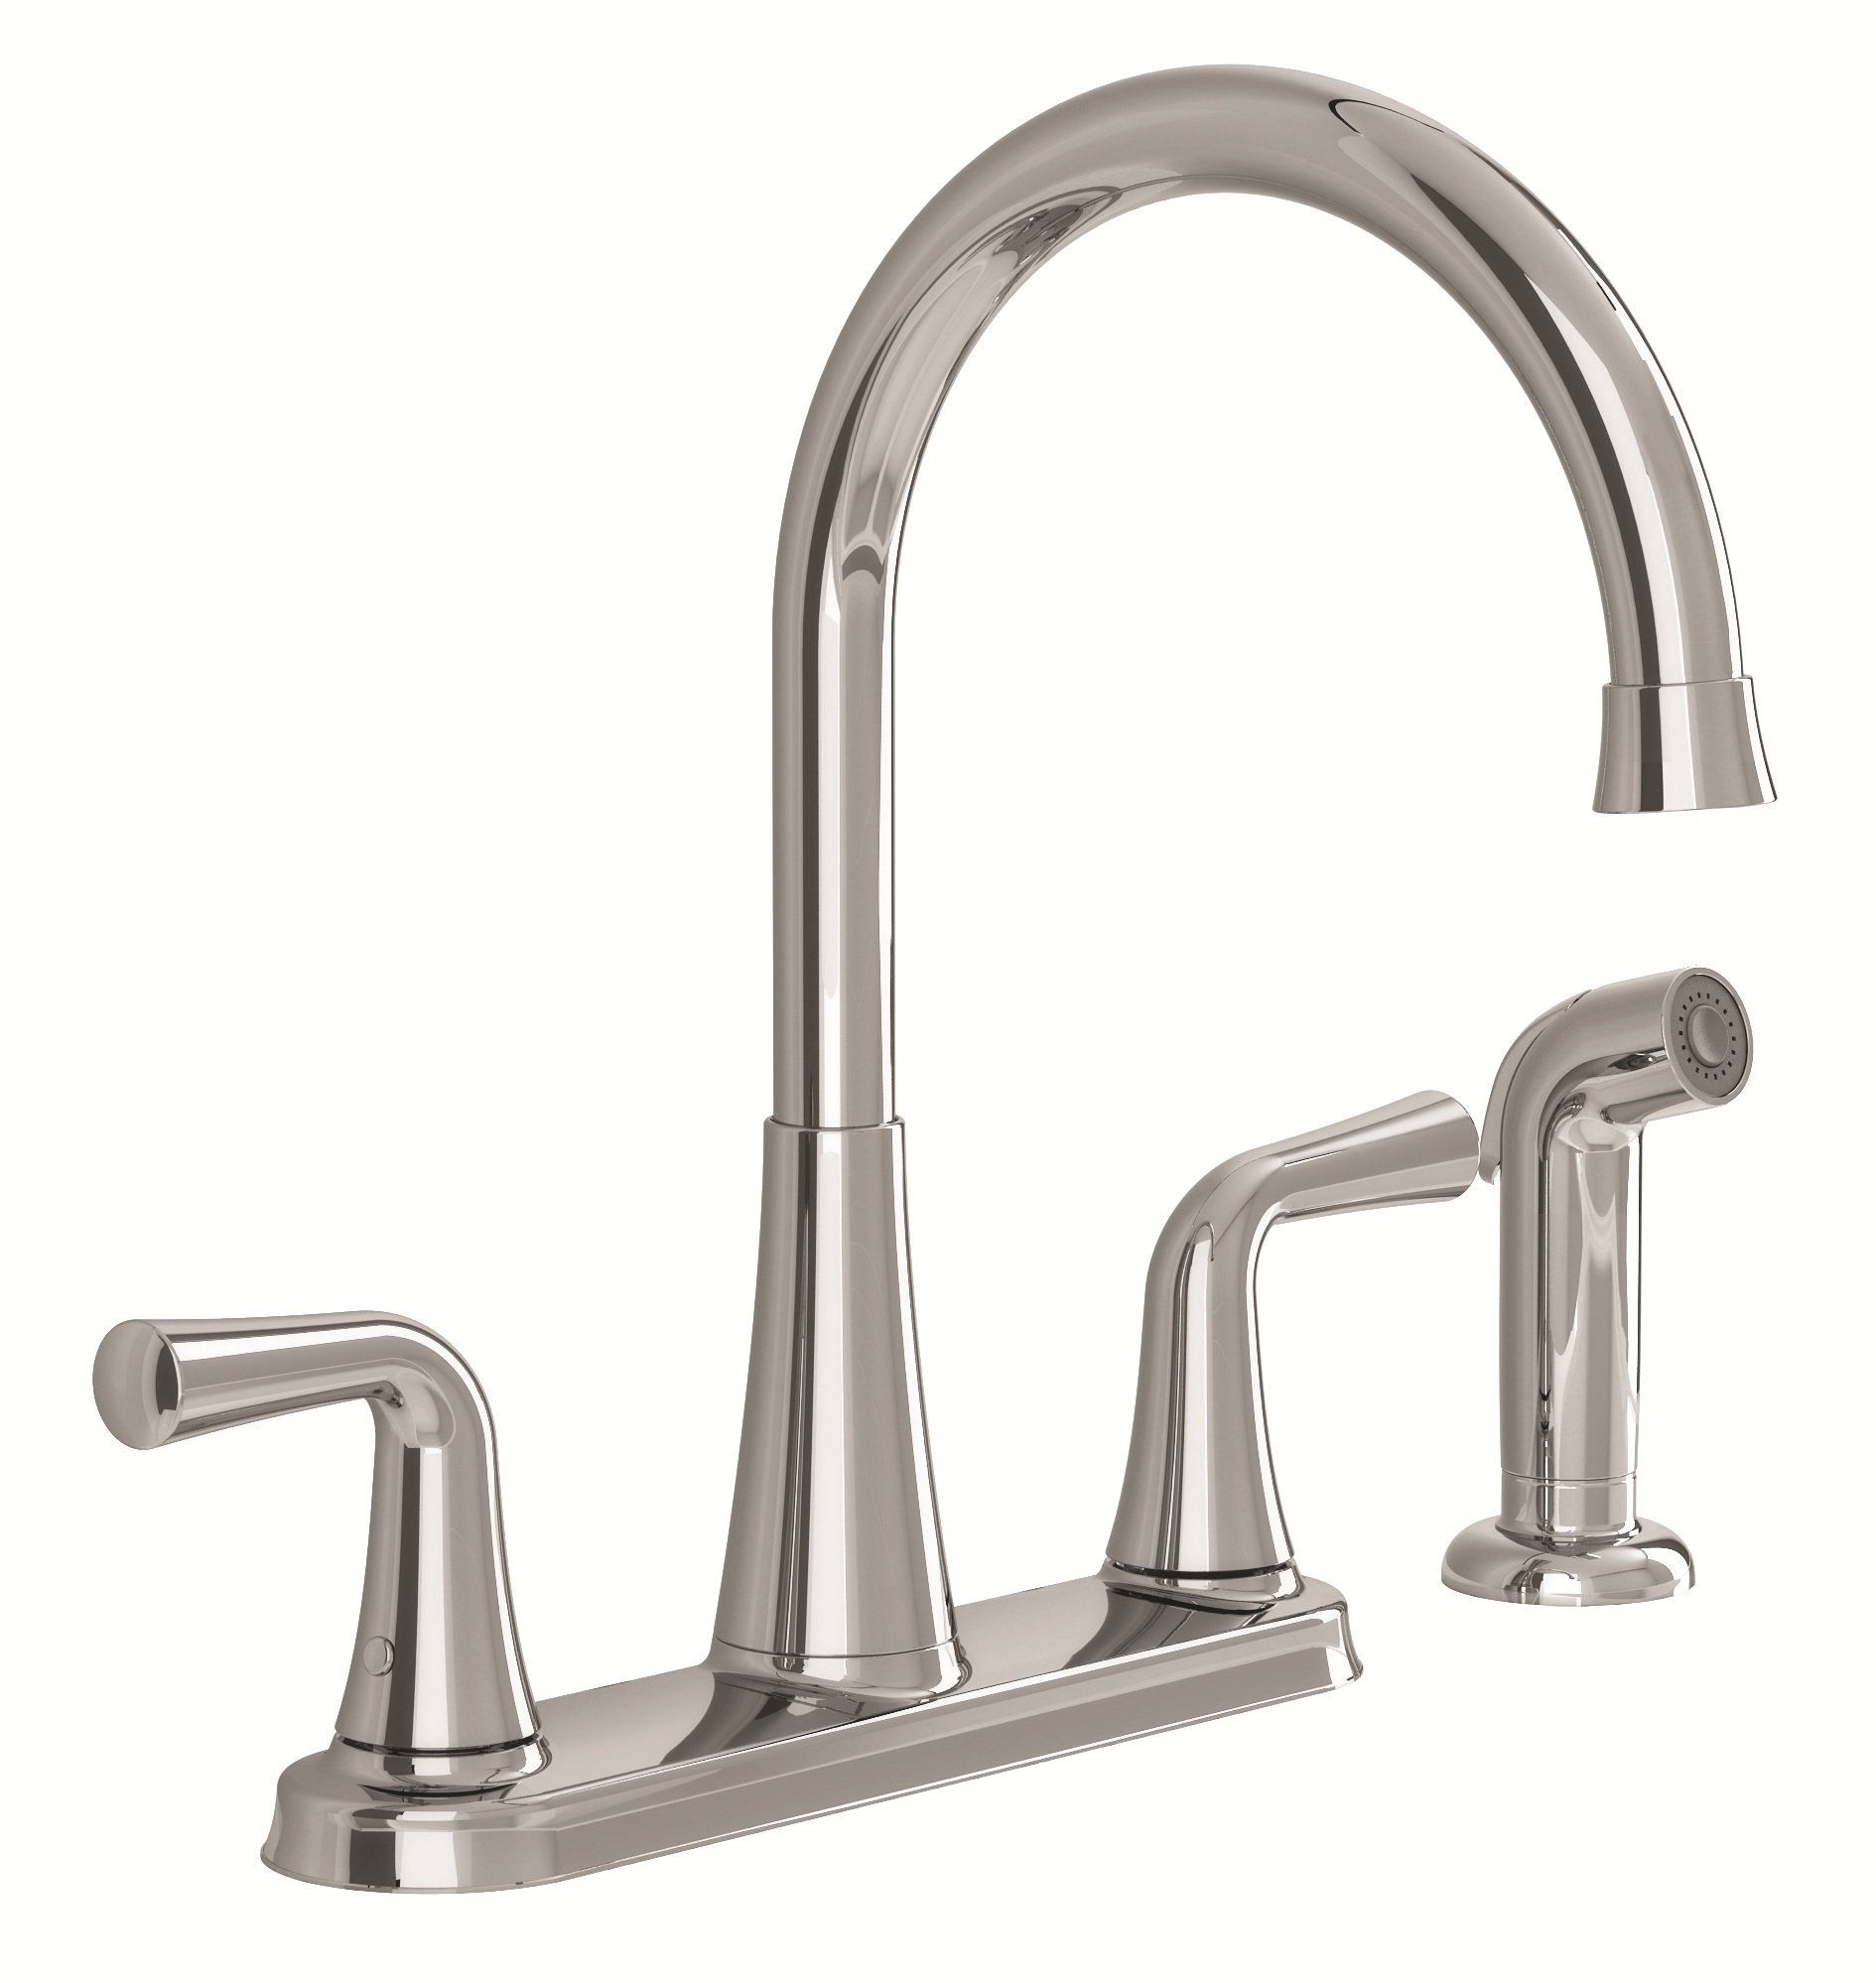 Kitchen Faucets | Gold Faucet Kitchen | Single Handle Kitchen Faucet